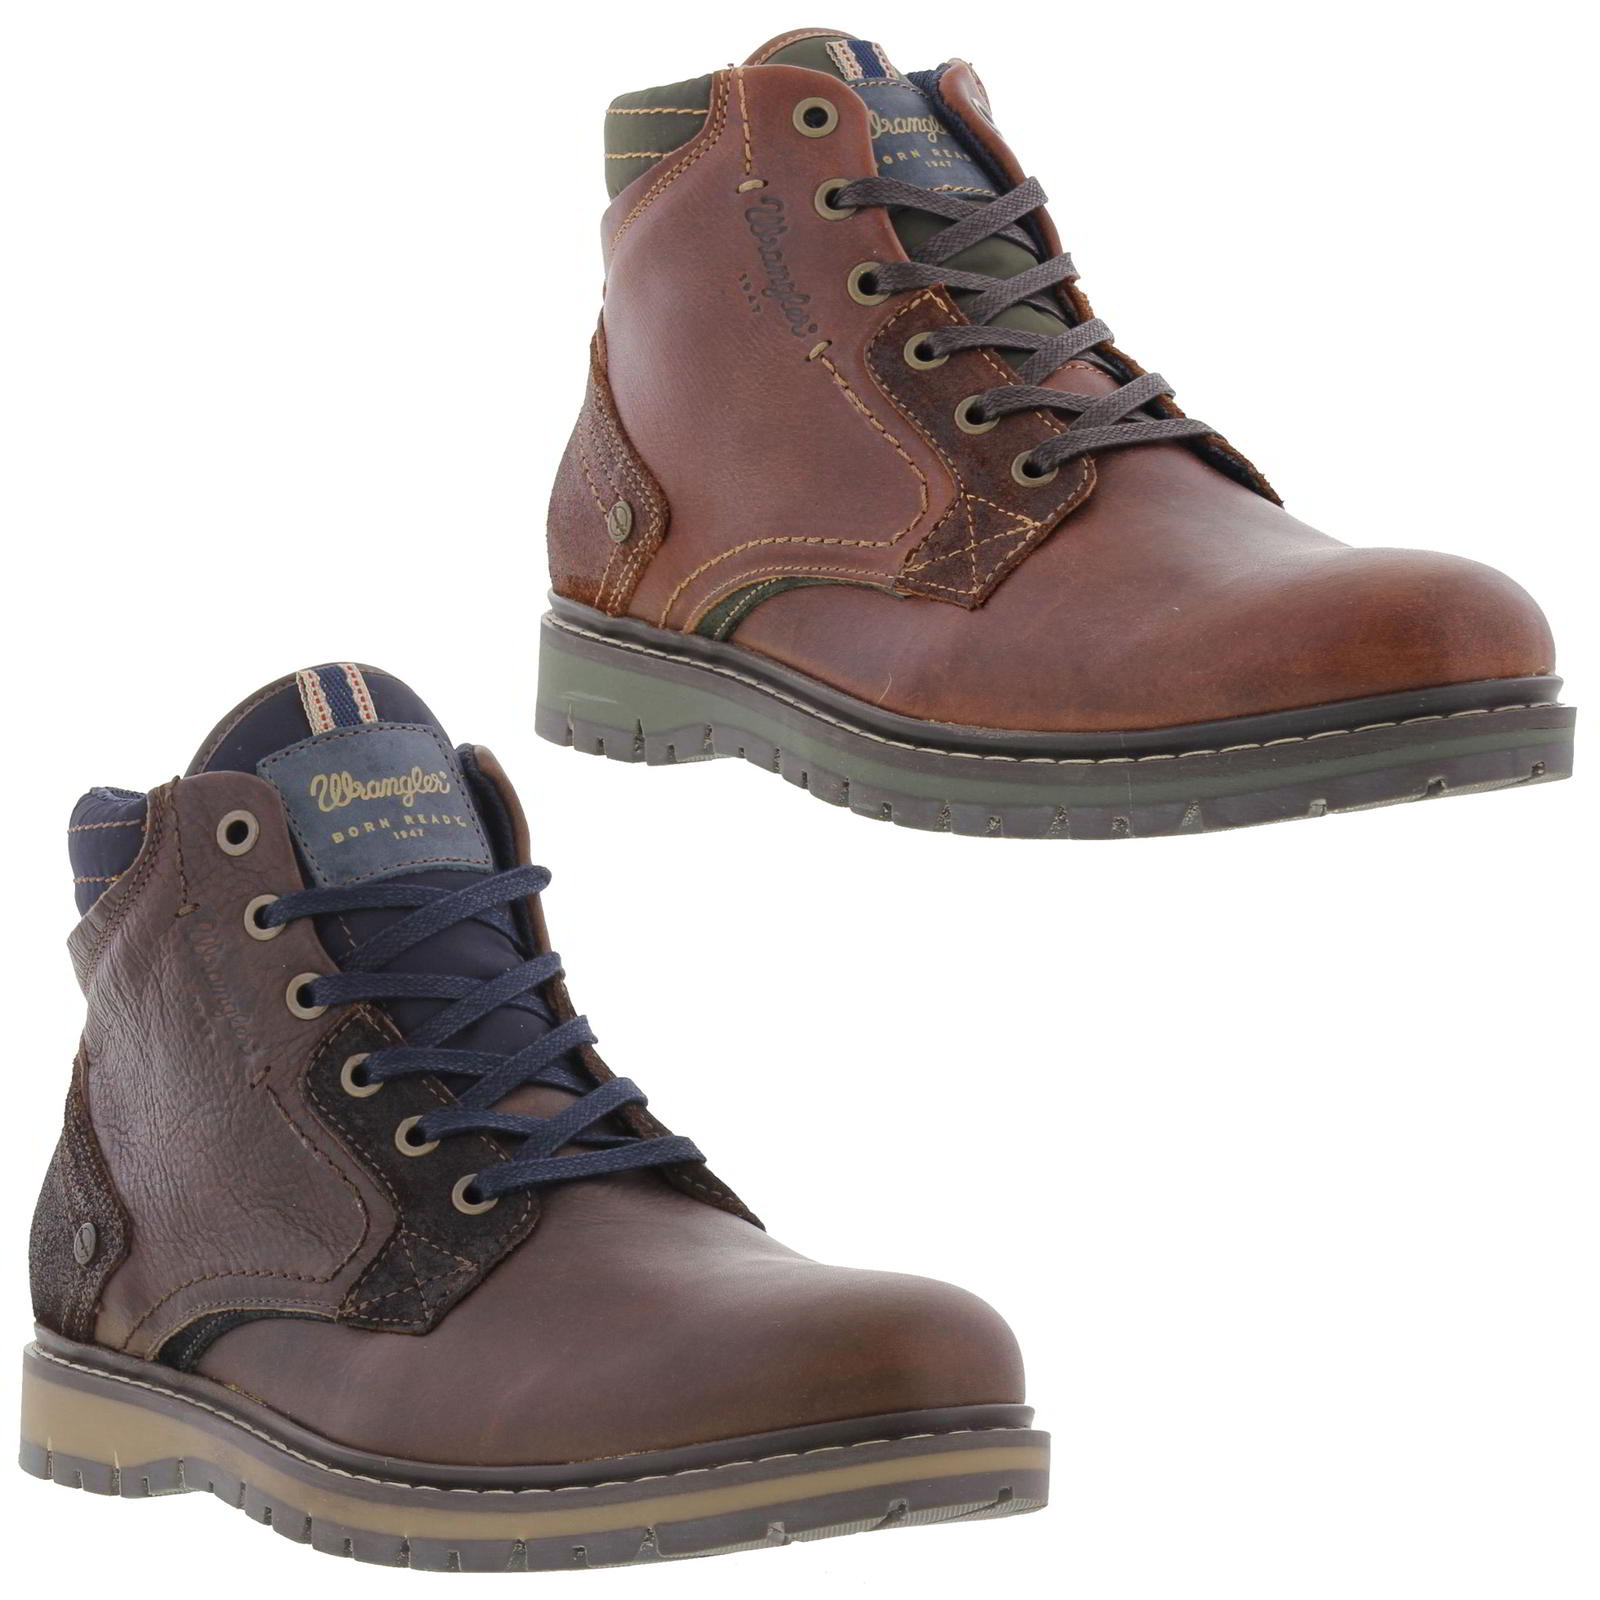 Wrangler Miwouk Mens Brown Leather Lace Up Chukka Ankle Boots Size 8